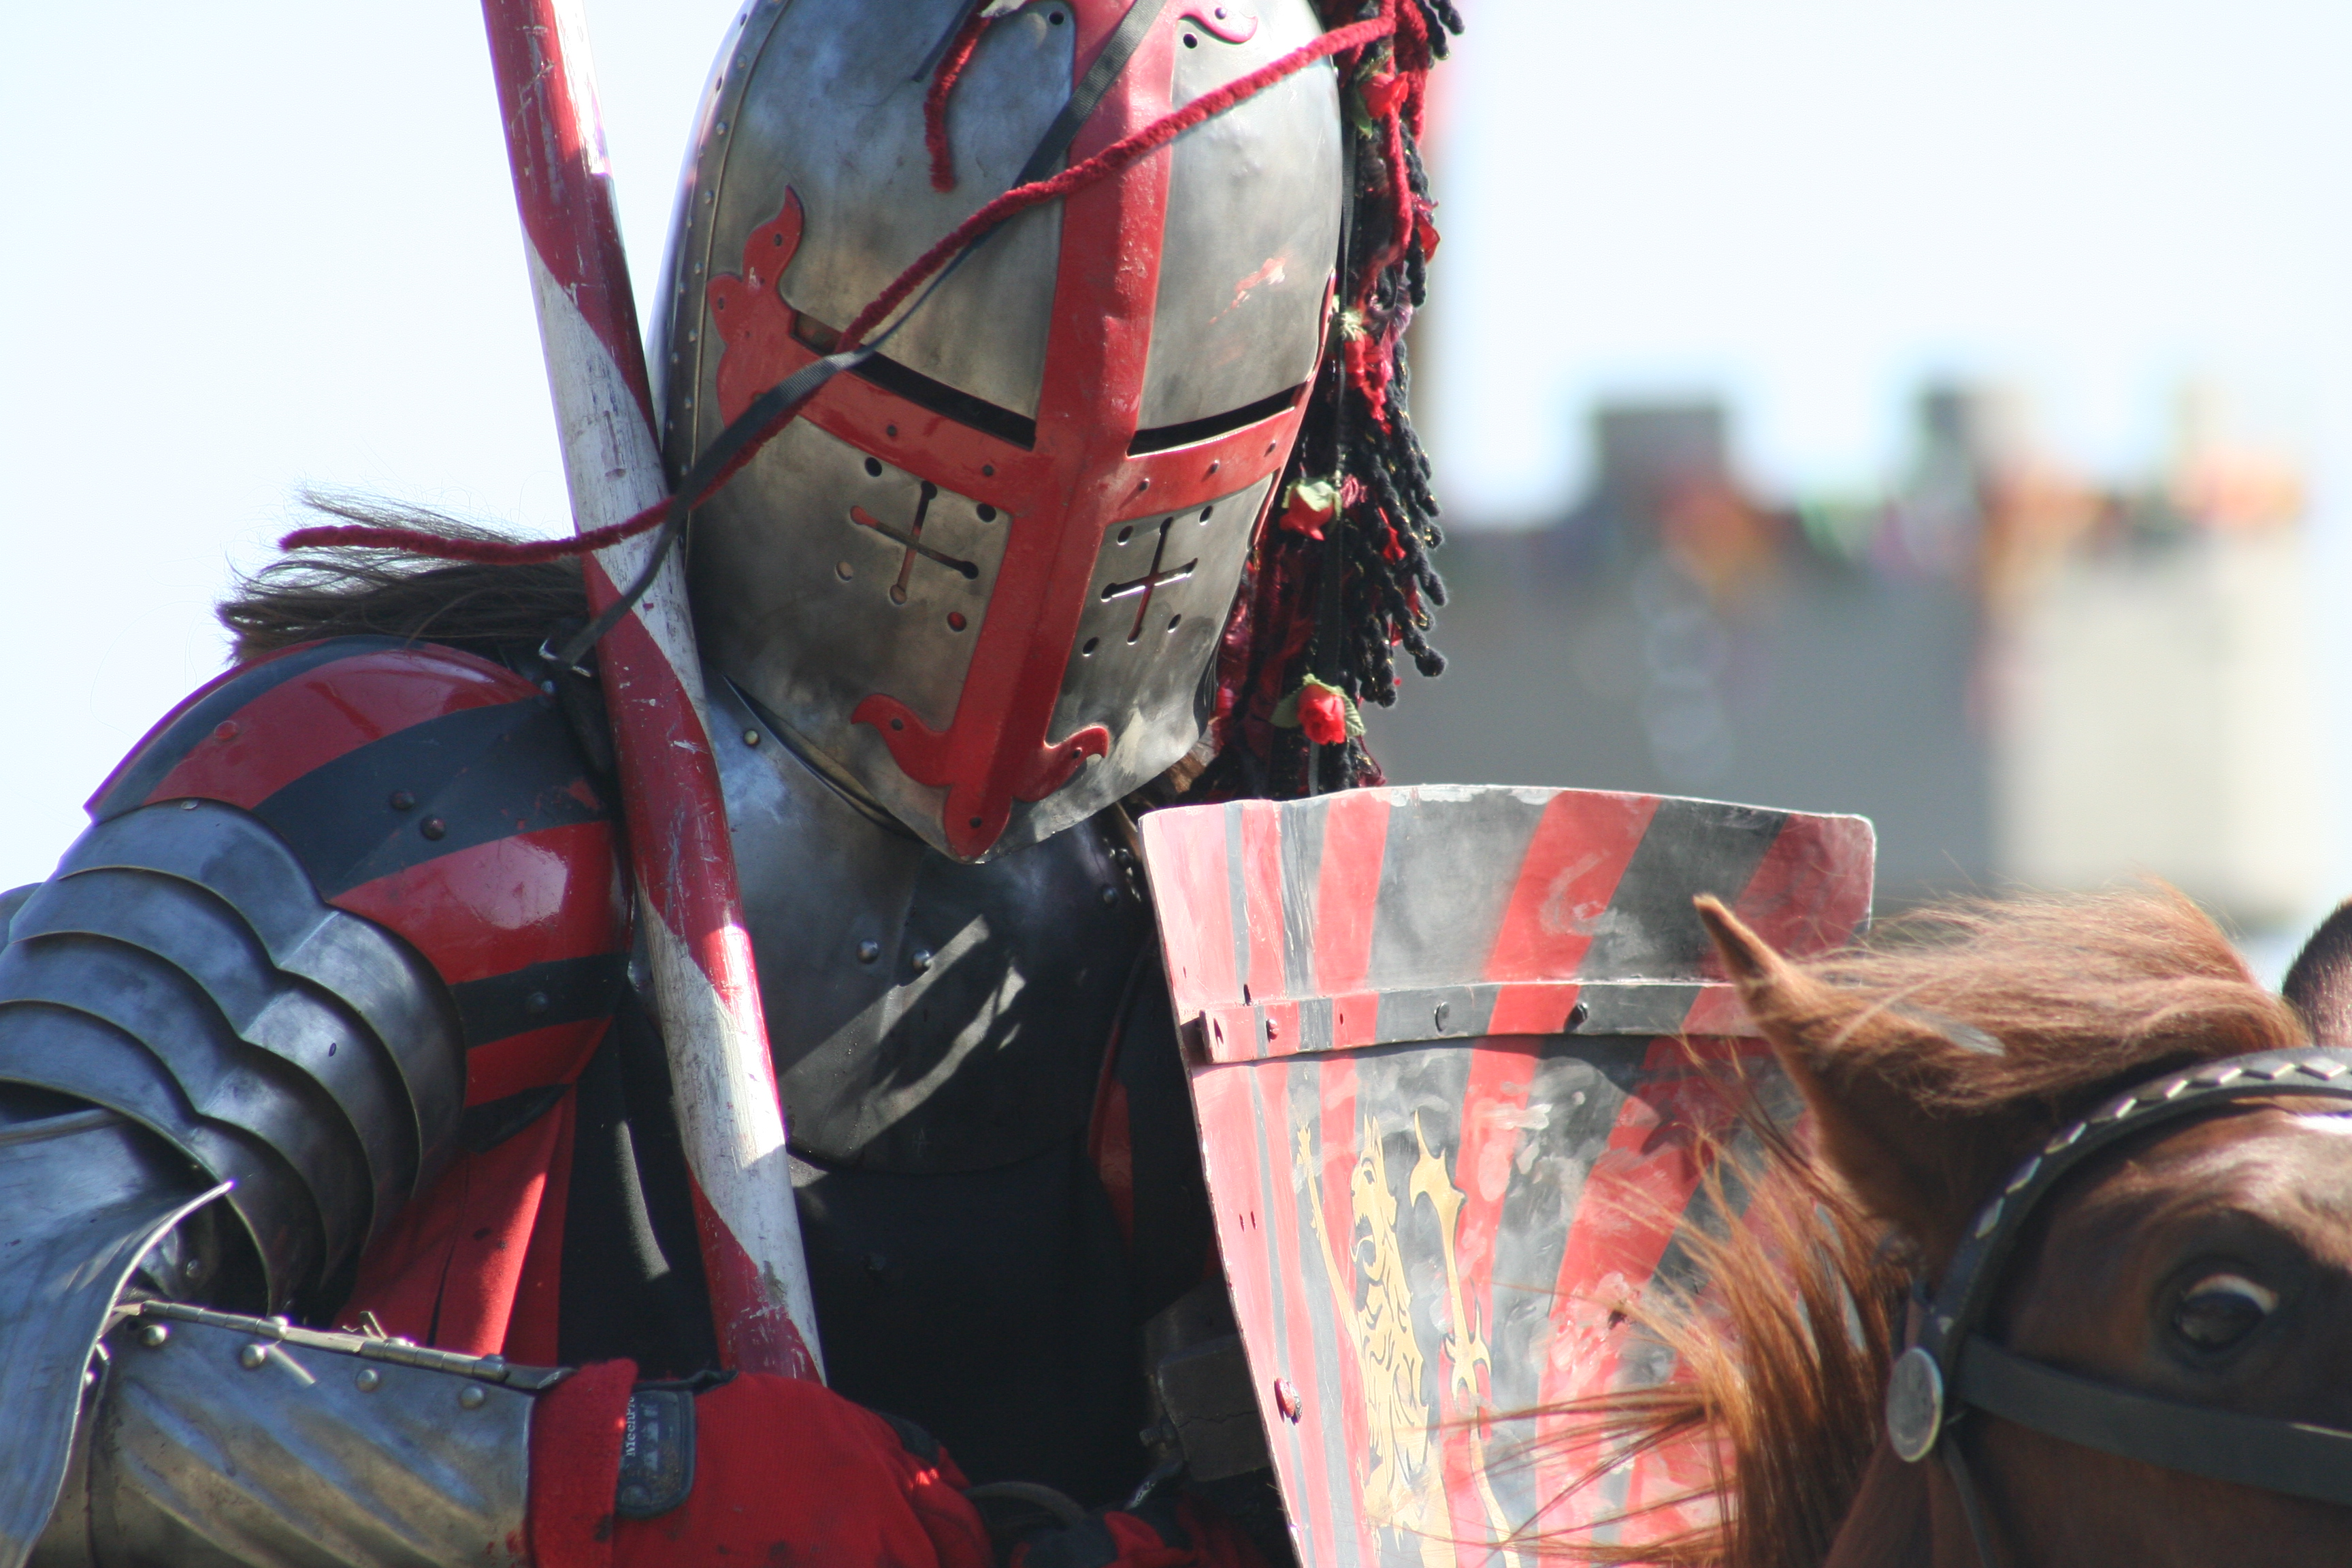 Act_1TheRedKnight.JPG